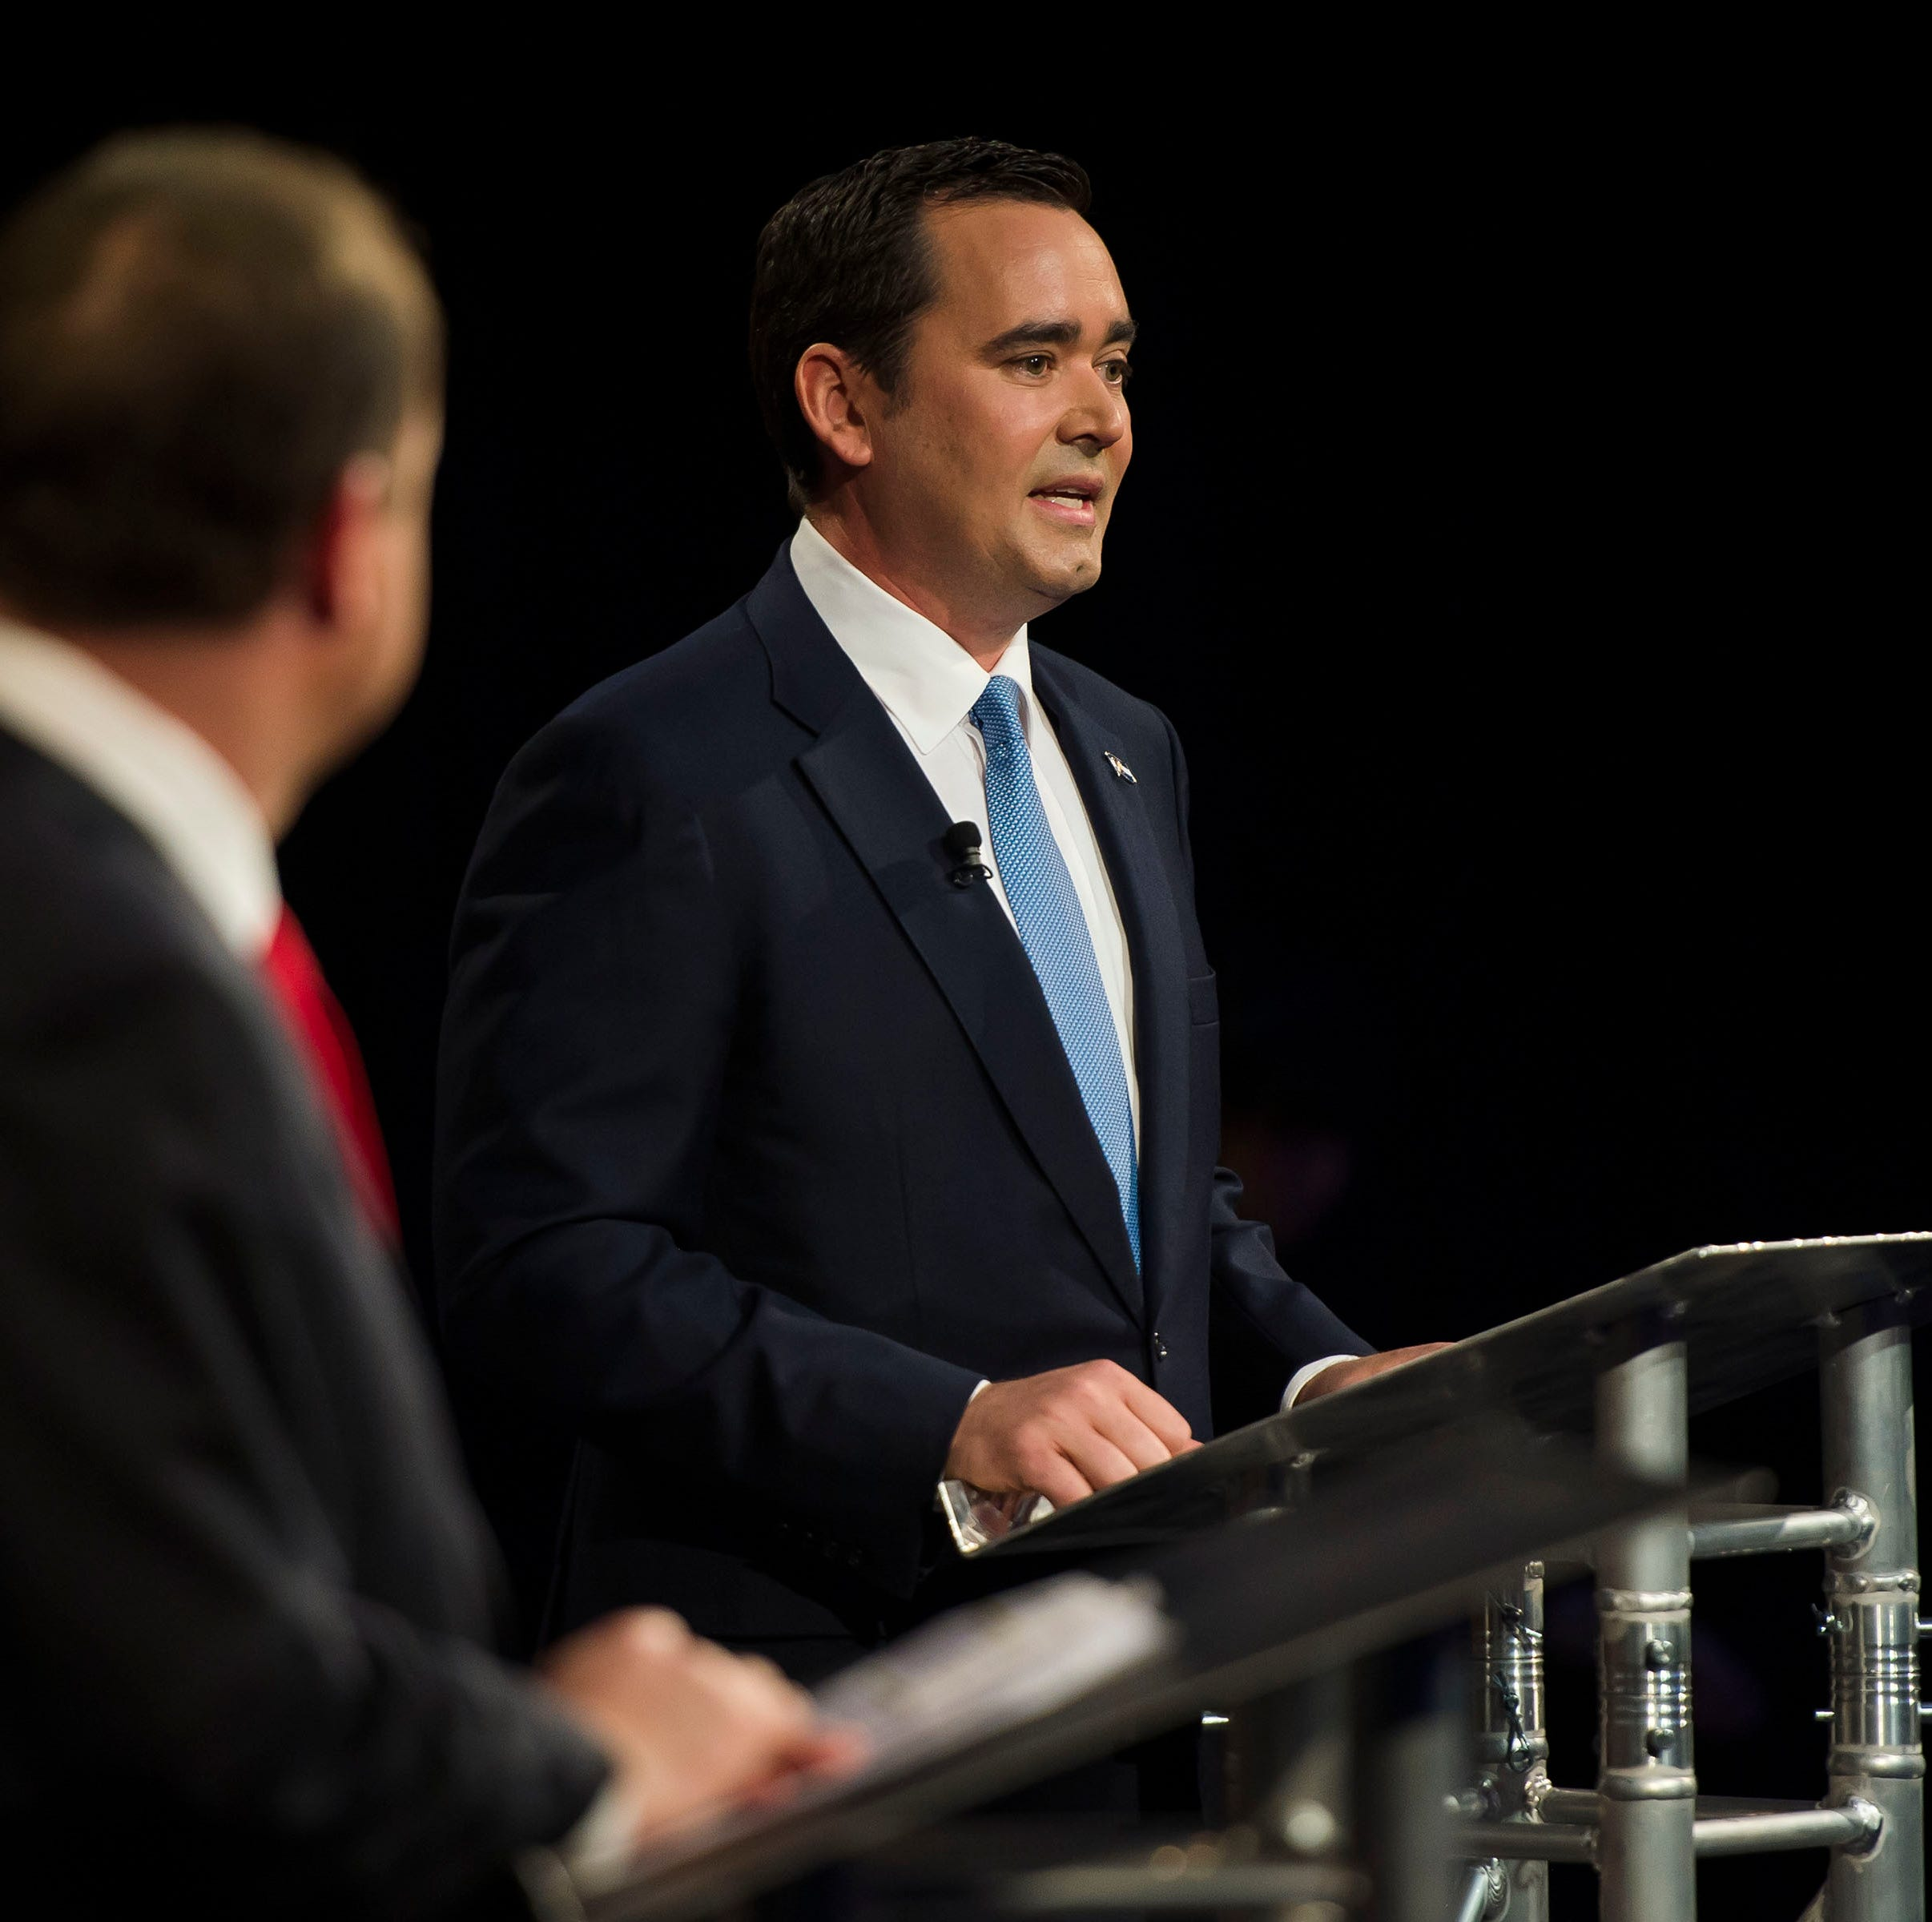 Colorado governor candidates Jared Polis, Walker Stapleton face off at debate